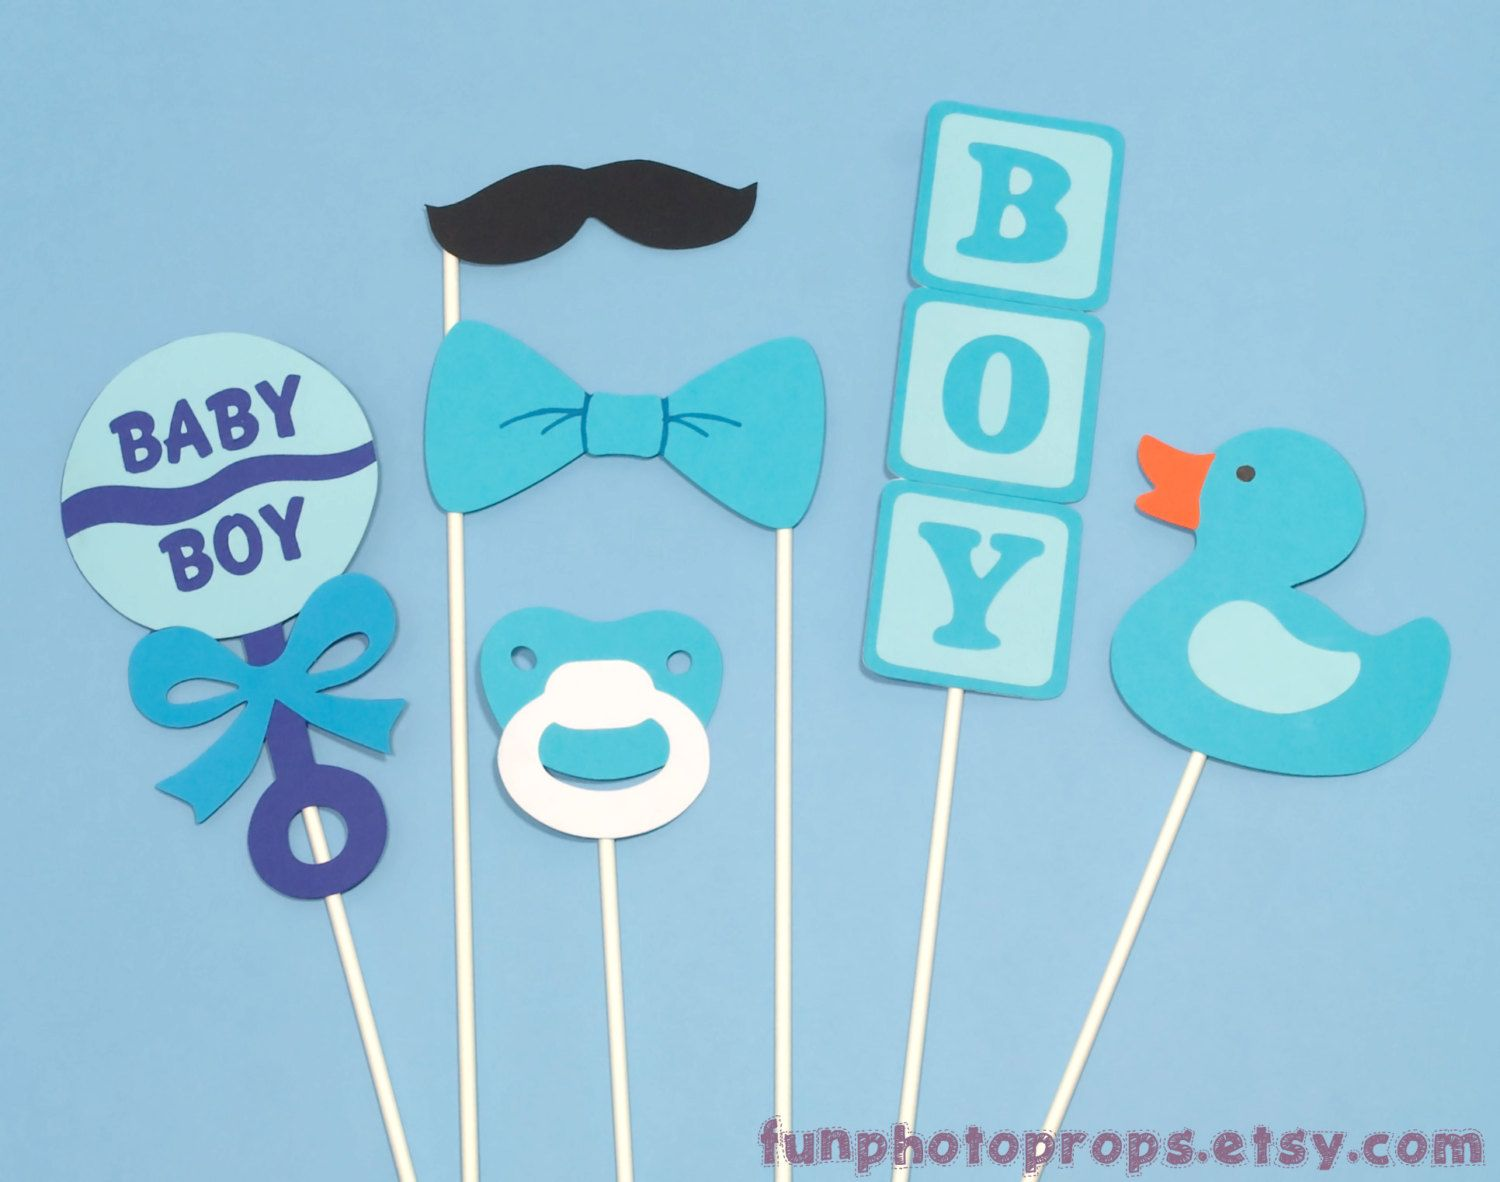 Photo Booth Prop Set 6 Piece Baby Boy Photobooth Baby